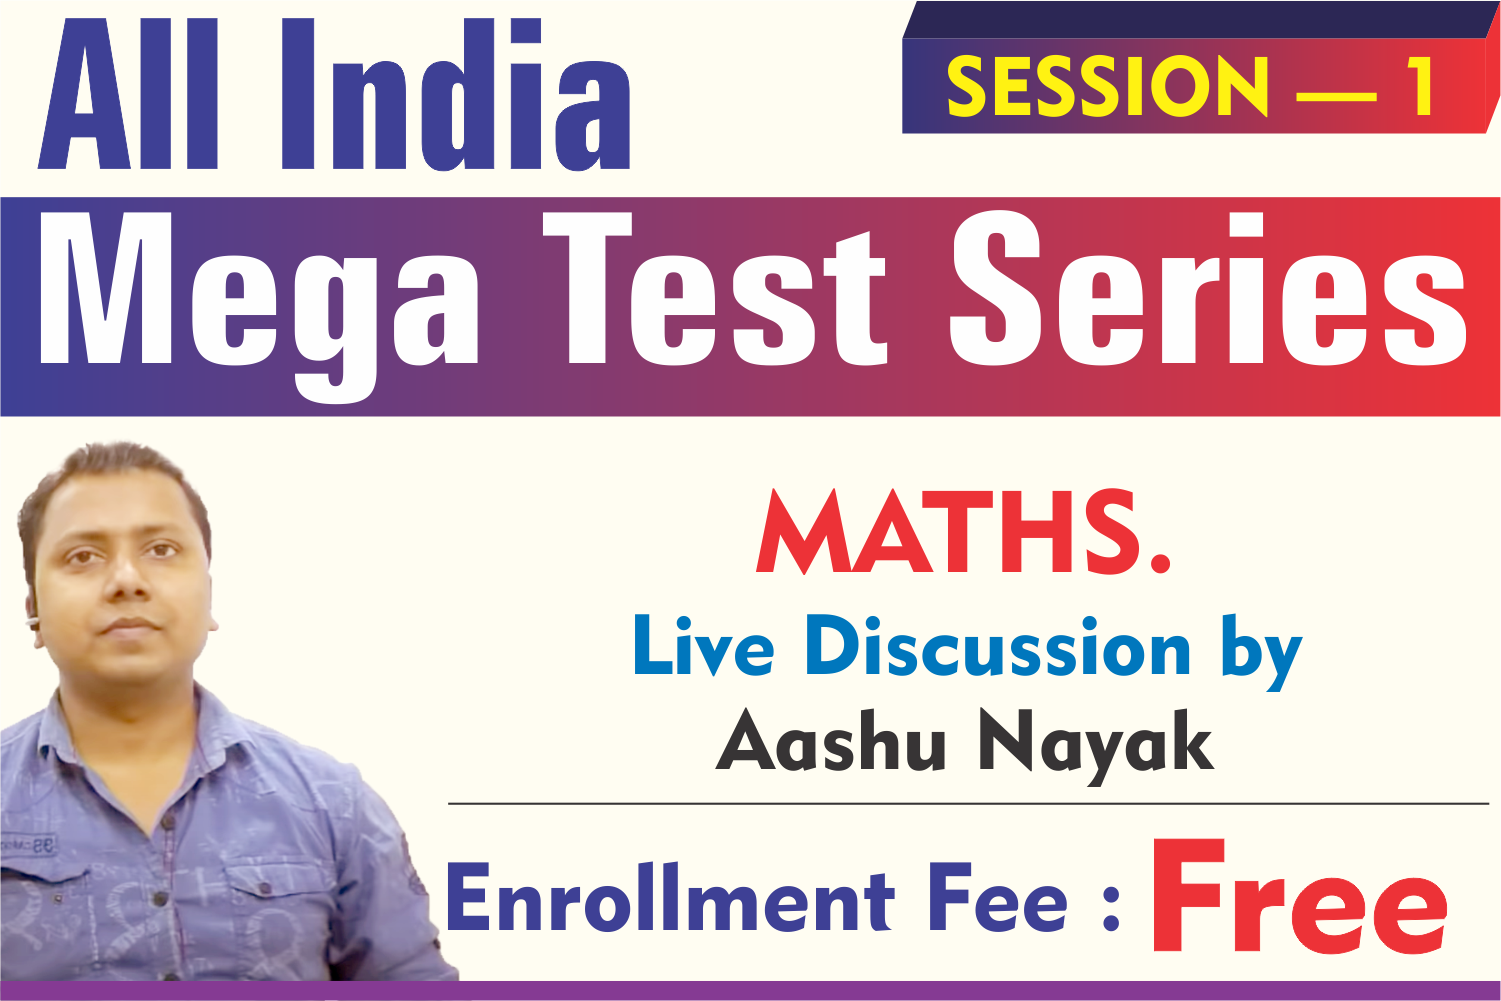 All India Mega Test Series, Session-01: Maths. Discussion By Aashu Nayak